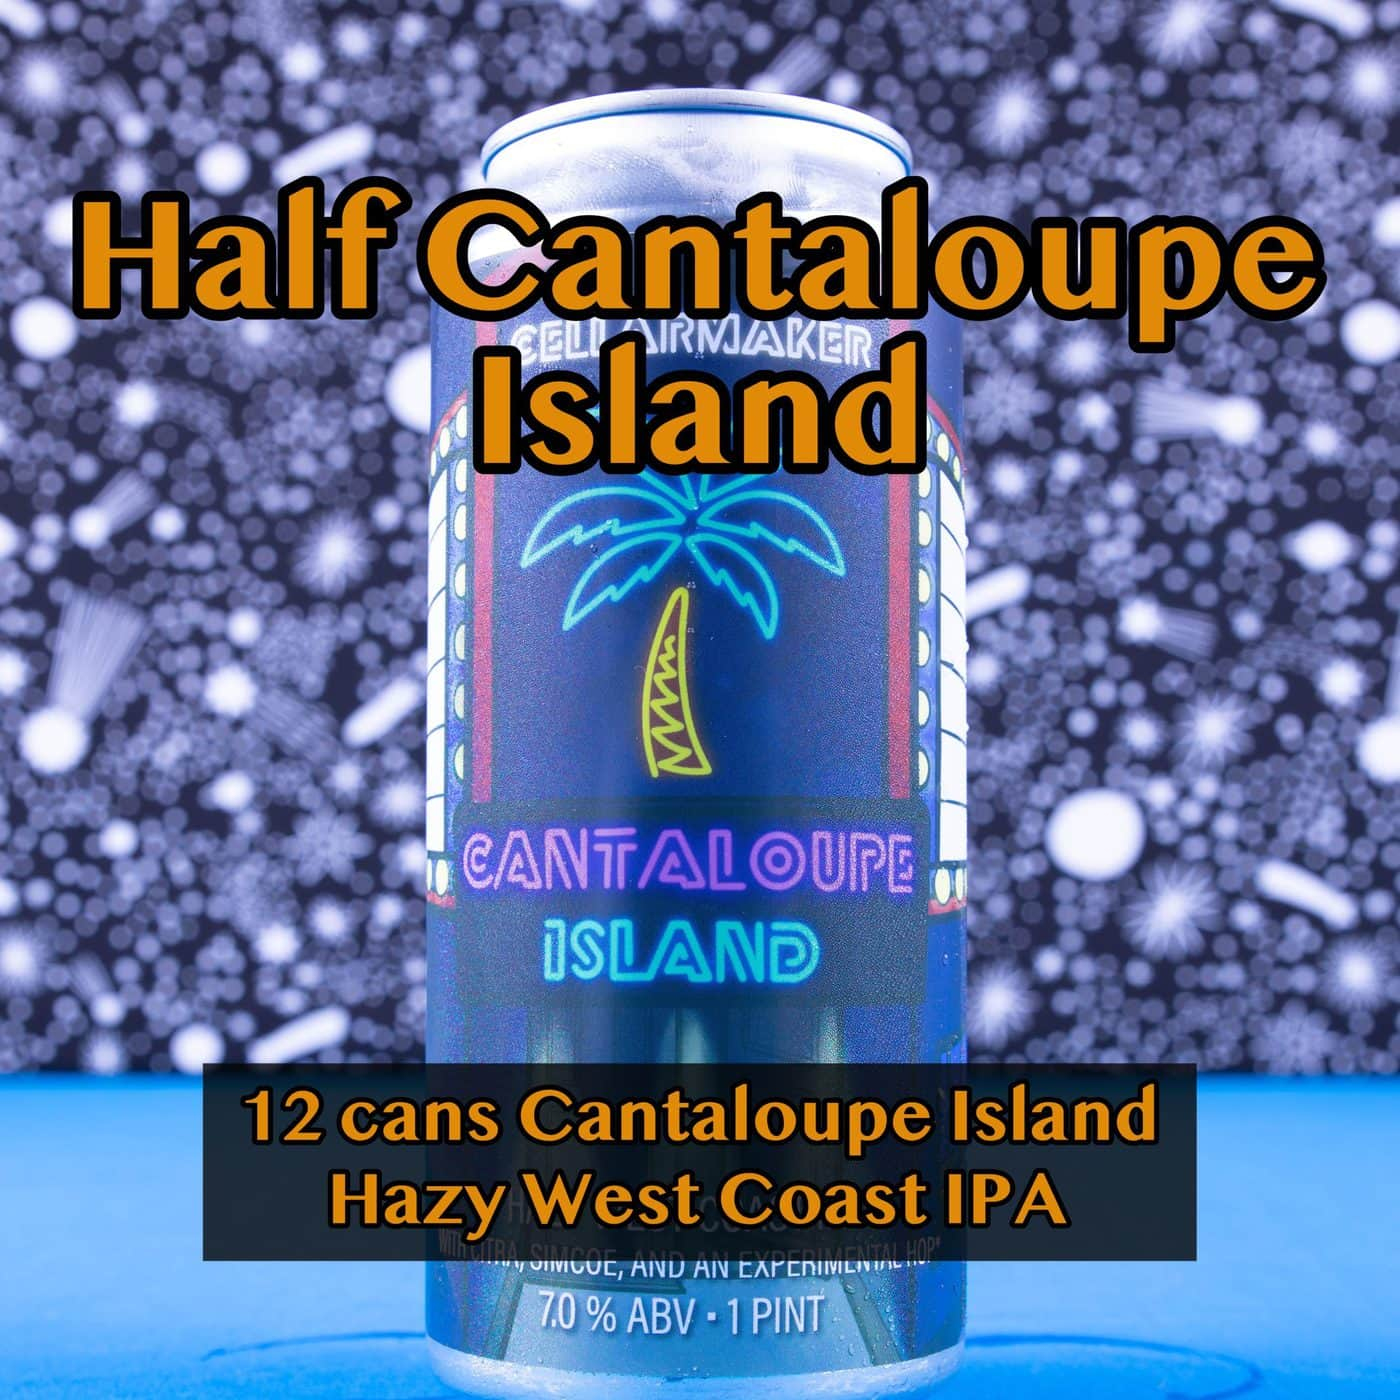 HALF CASE 12 CANS Cantaloupe Island IPA.. SHIPPING Out On WEDNESDAY 12/2 For NEXT DAY Delivery*